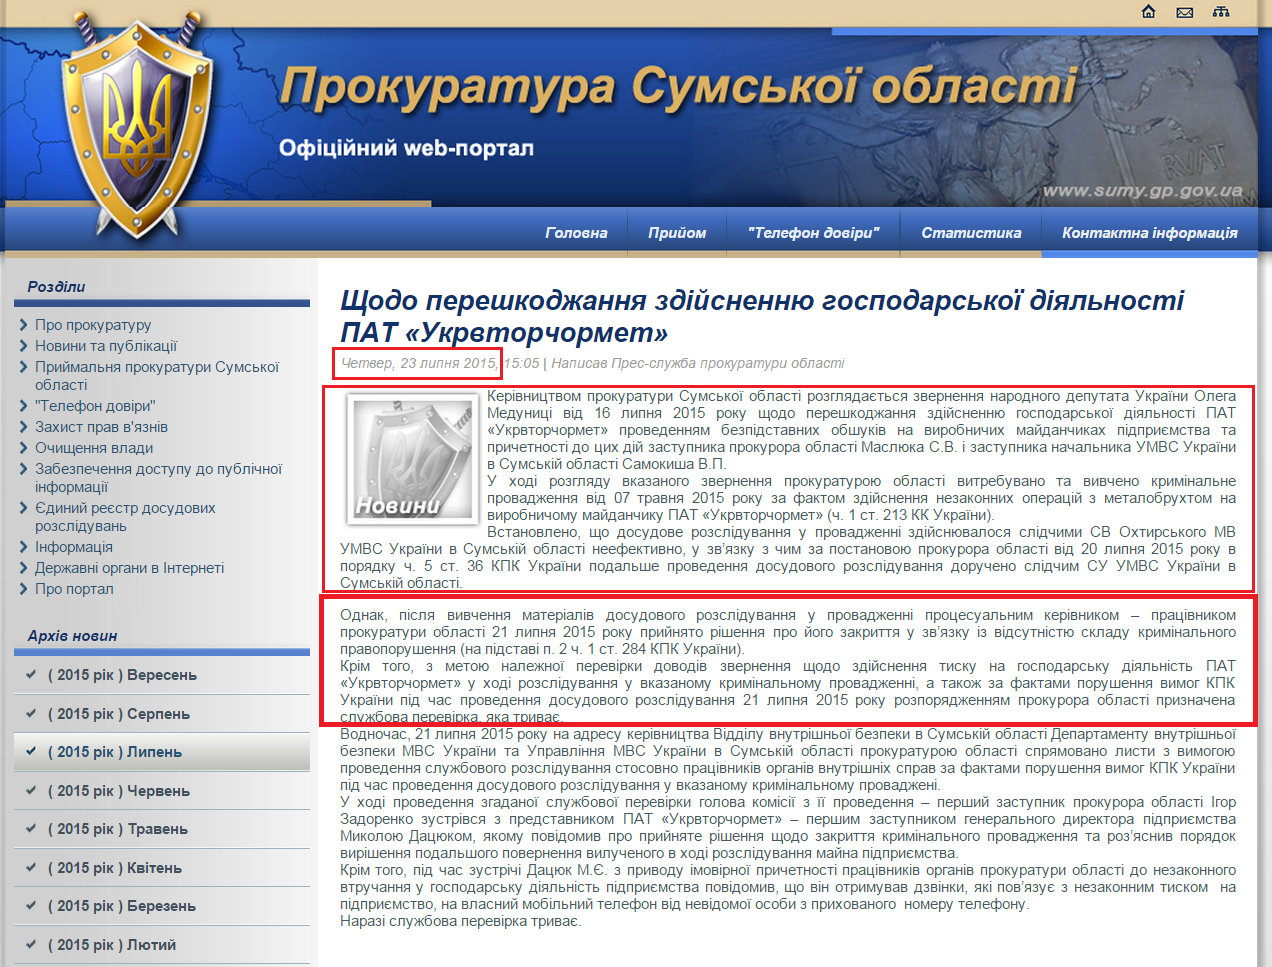 http://sumy.gp.gov.ua/?option=com_content&view=article&id=1974:2015-07-23-12-07-18&catid=67:2015-07-02-11-32-27&Itemid=109